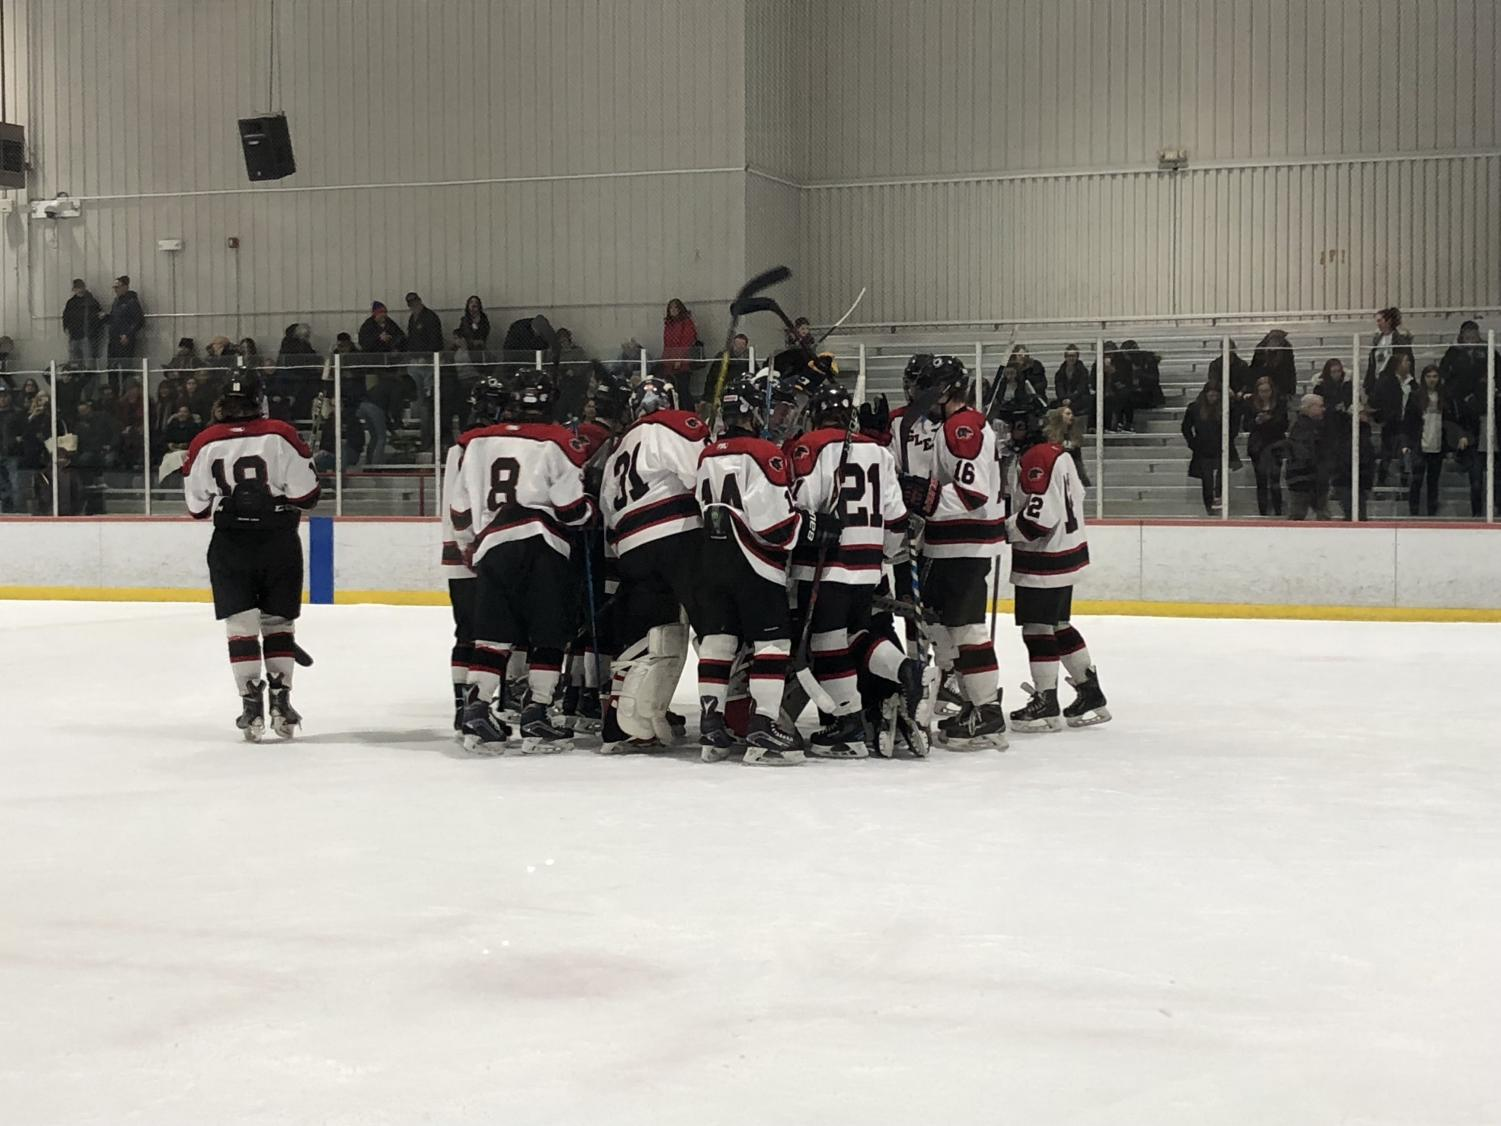 The 2017-2018 boys' ice hockey team celebrates after defeating Monville, 7-0. With a new coach and a talented roster, players are optimistic for the season ahead.